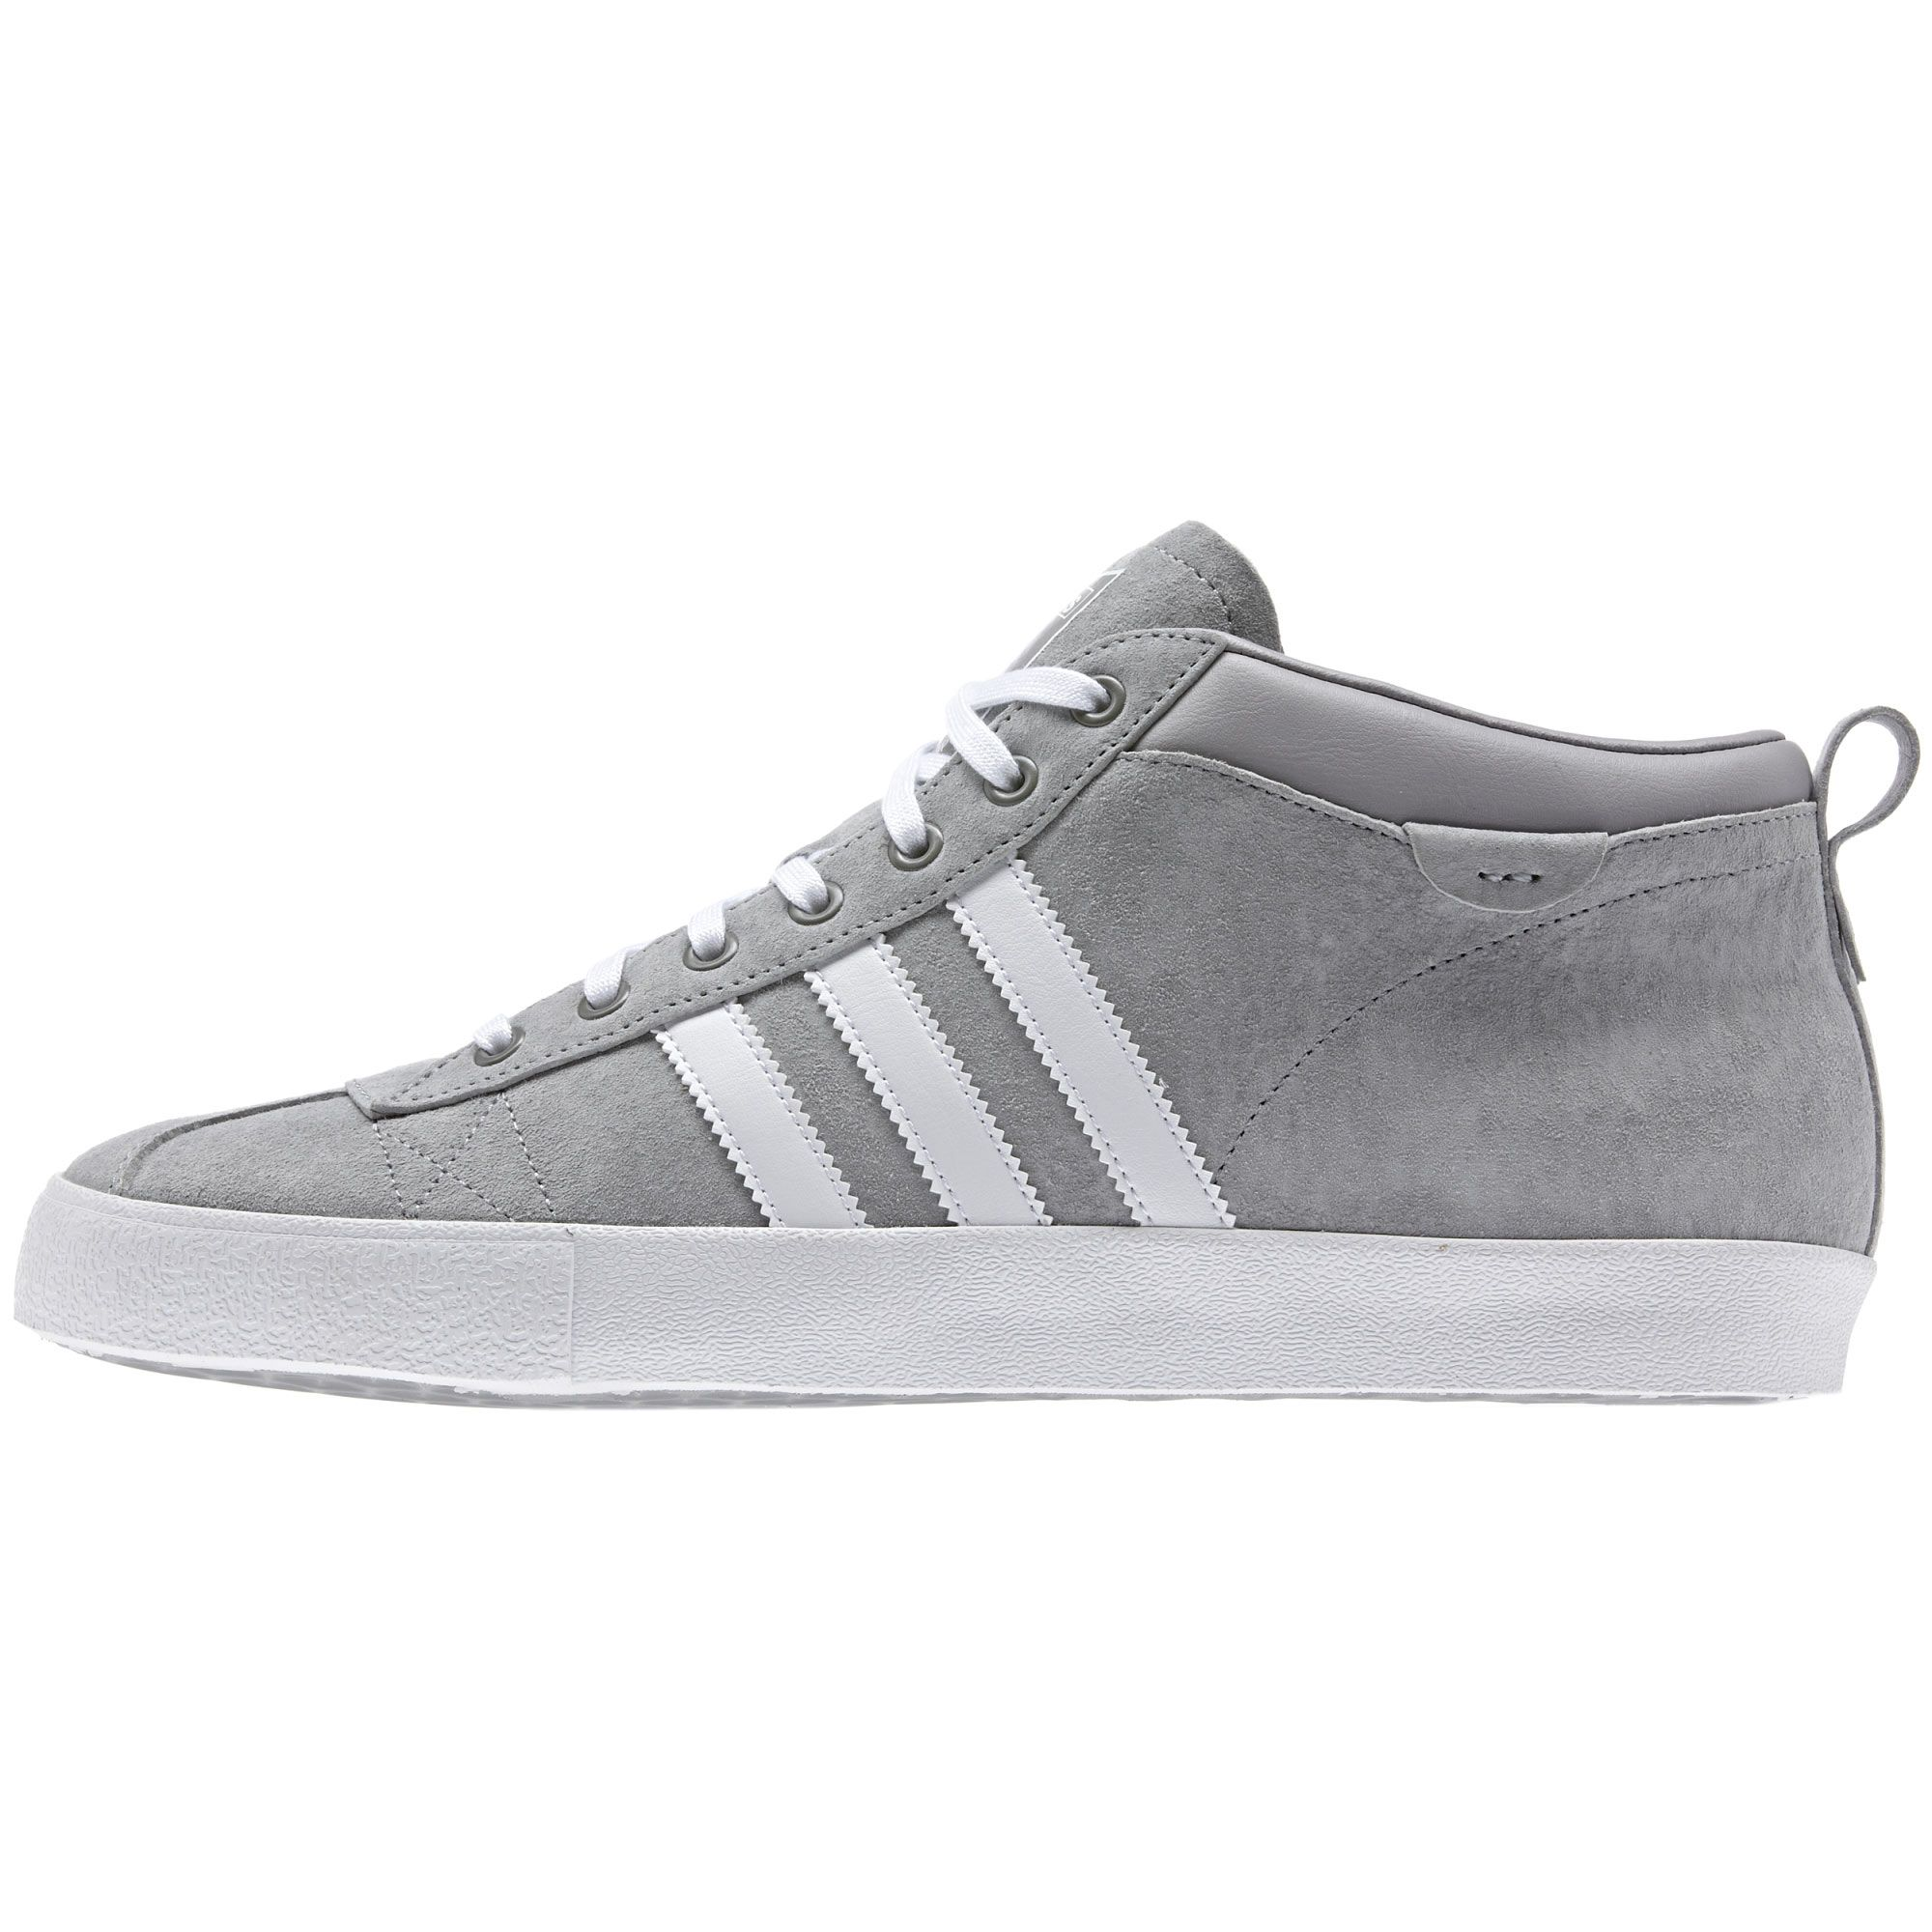 adidas gazelle mens mid grey nz